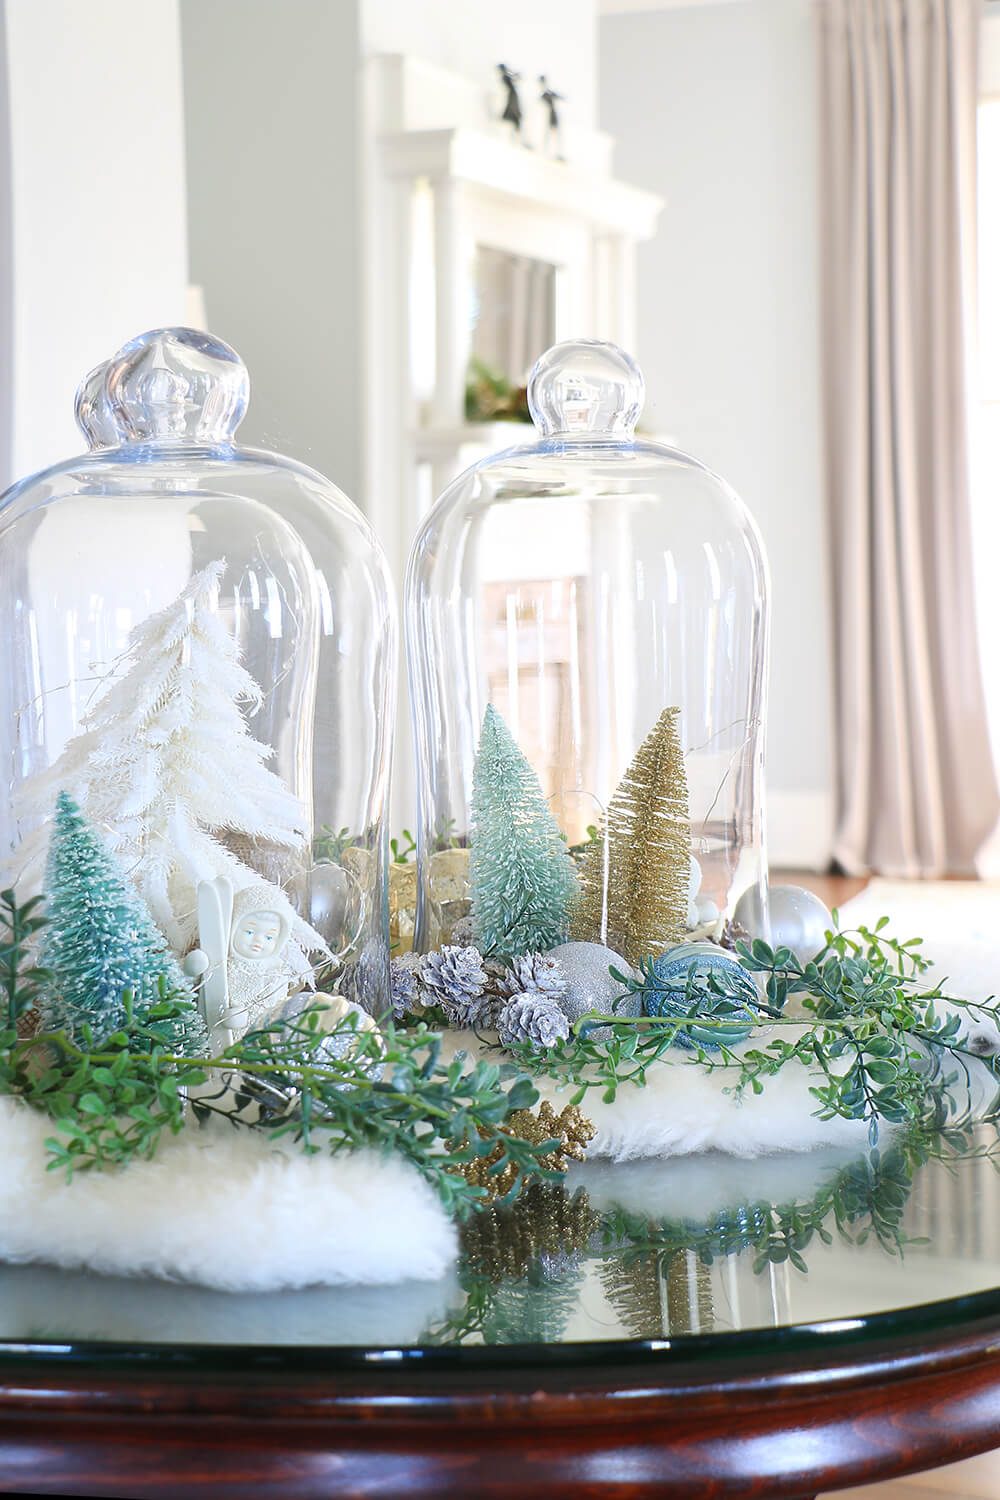 Bell-jars-wtih-Christmas-decor